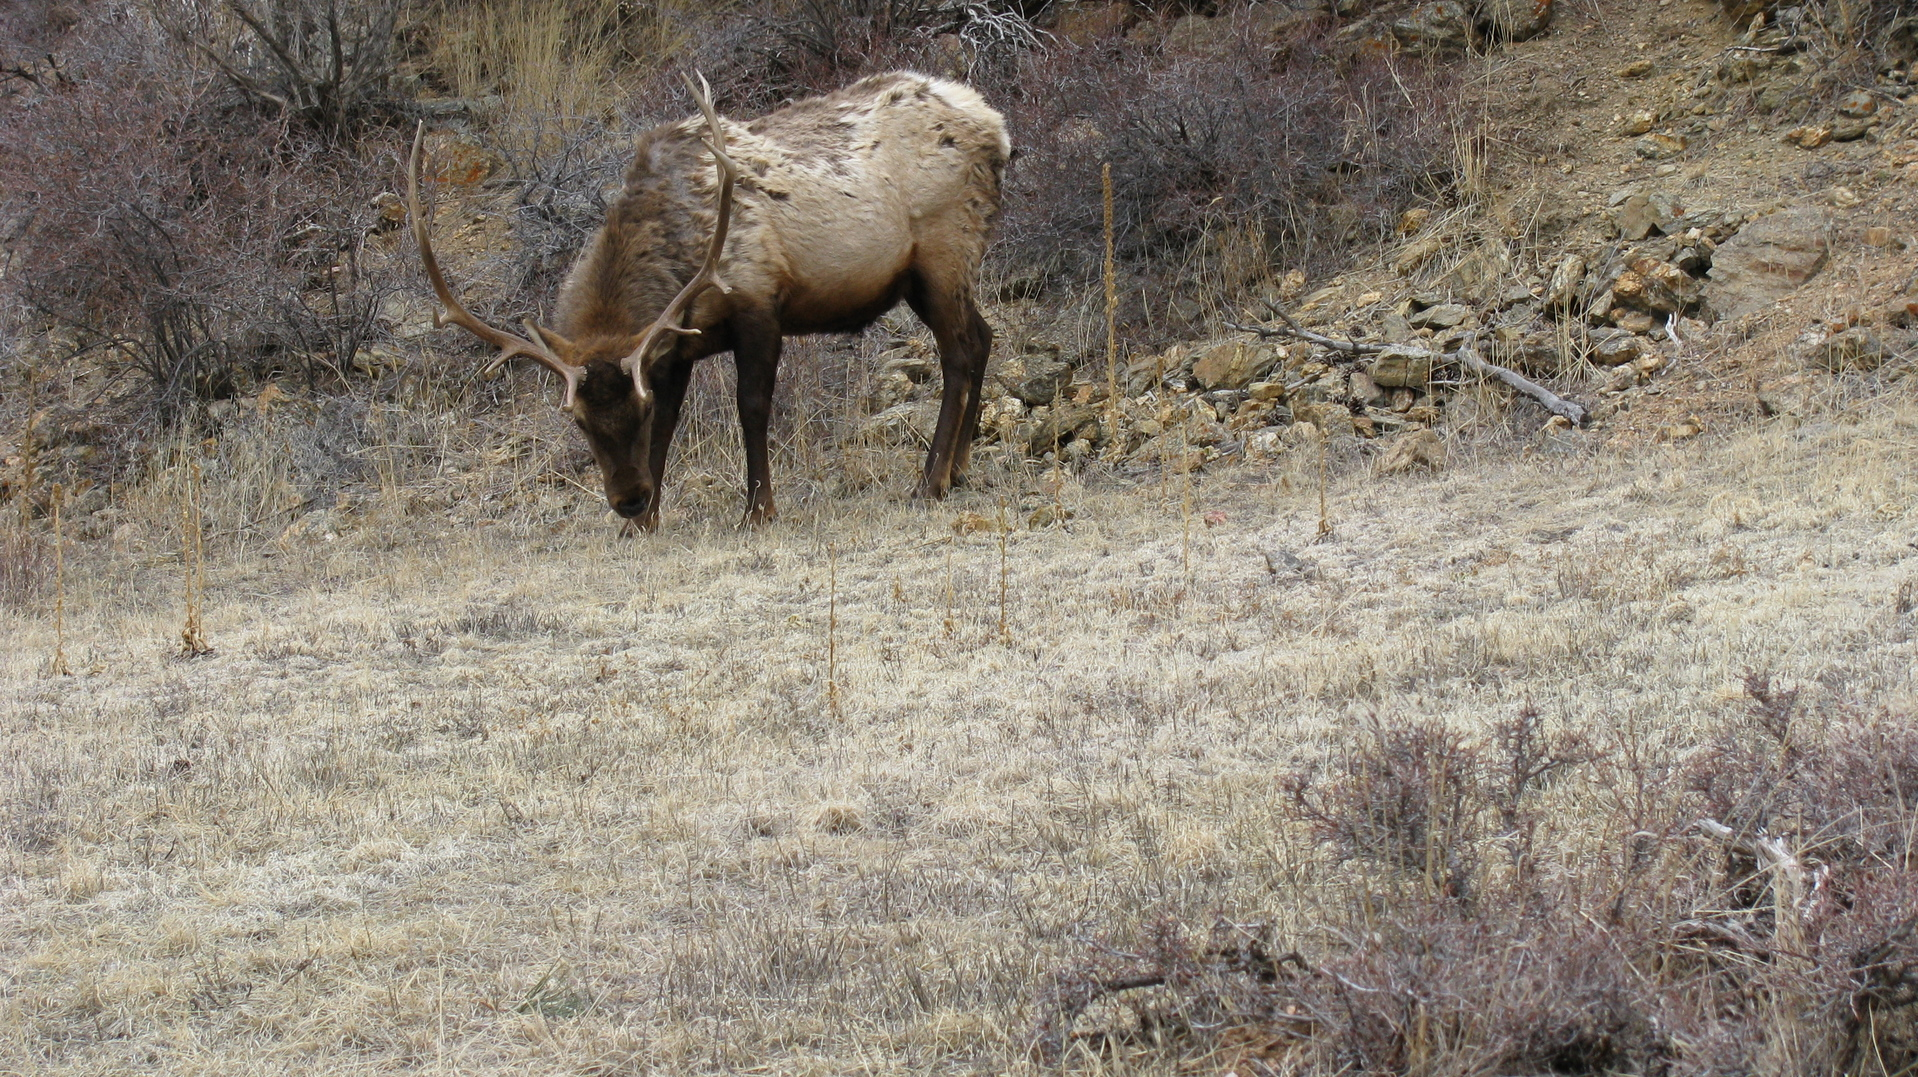 MN Native News: Fond Du Lac Band Of Lake Superior Chippewa's Proposal To Expand Elk Population